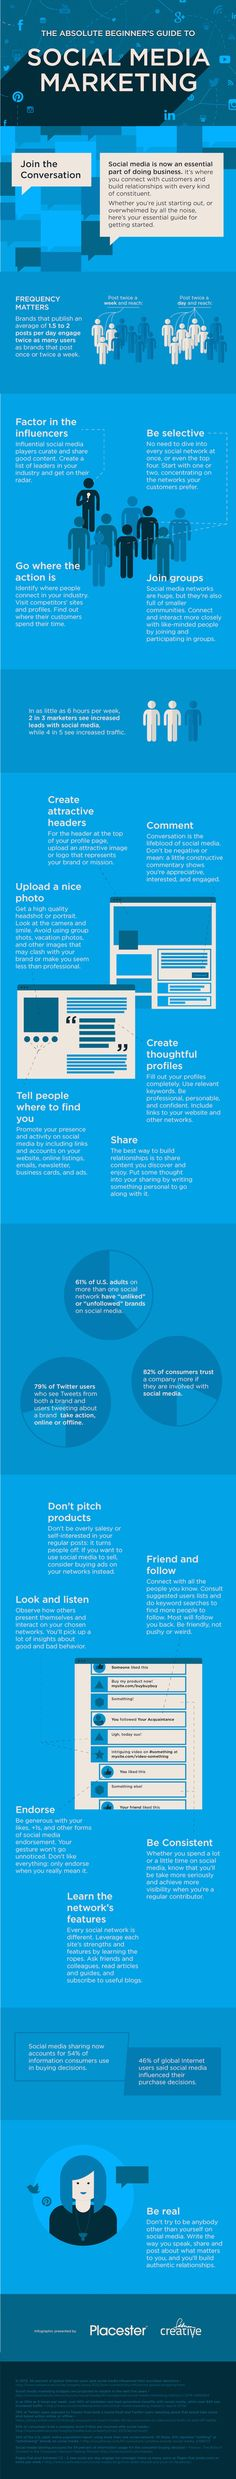 The Absolute Beginner's Guide to Social Media Marketing [INFOGRAPHIC]